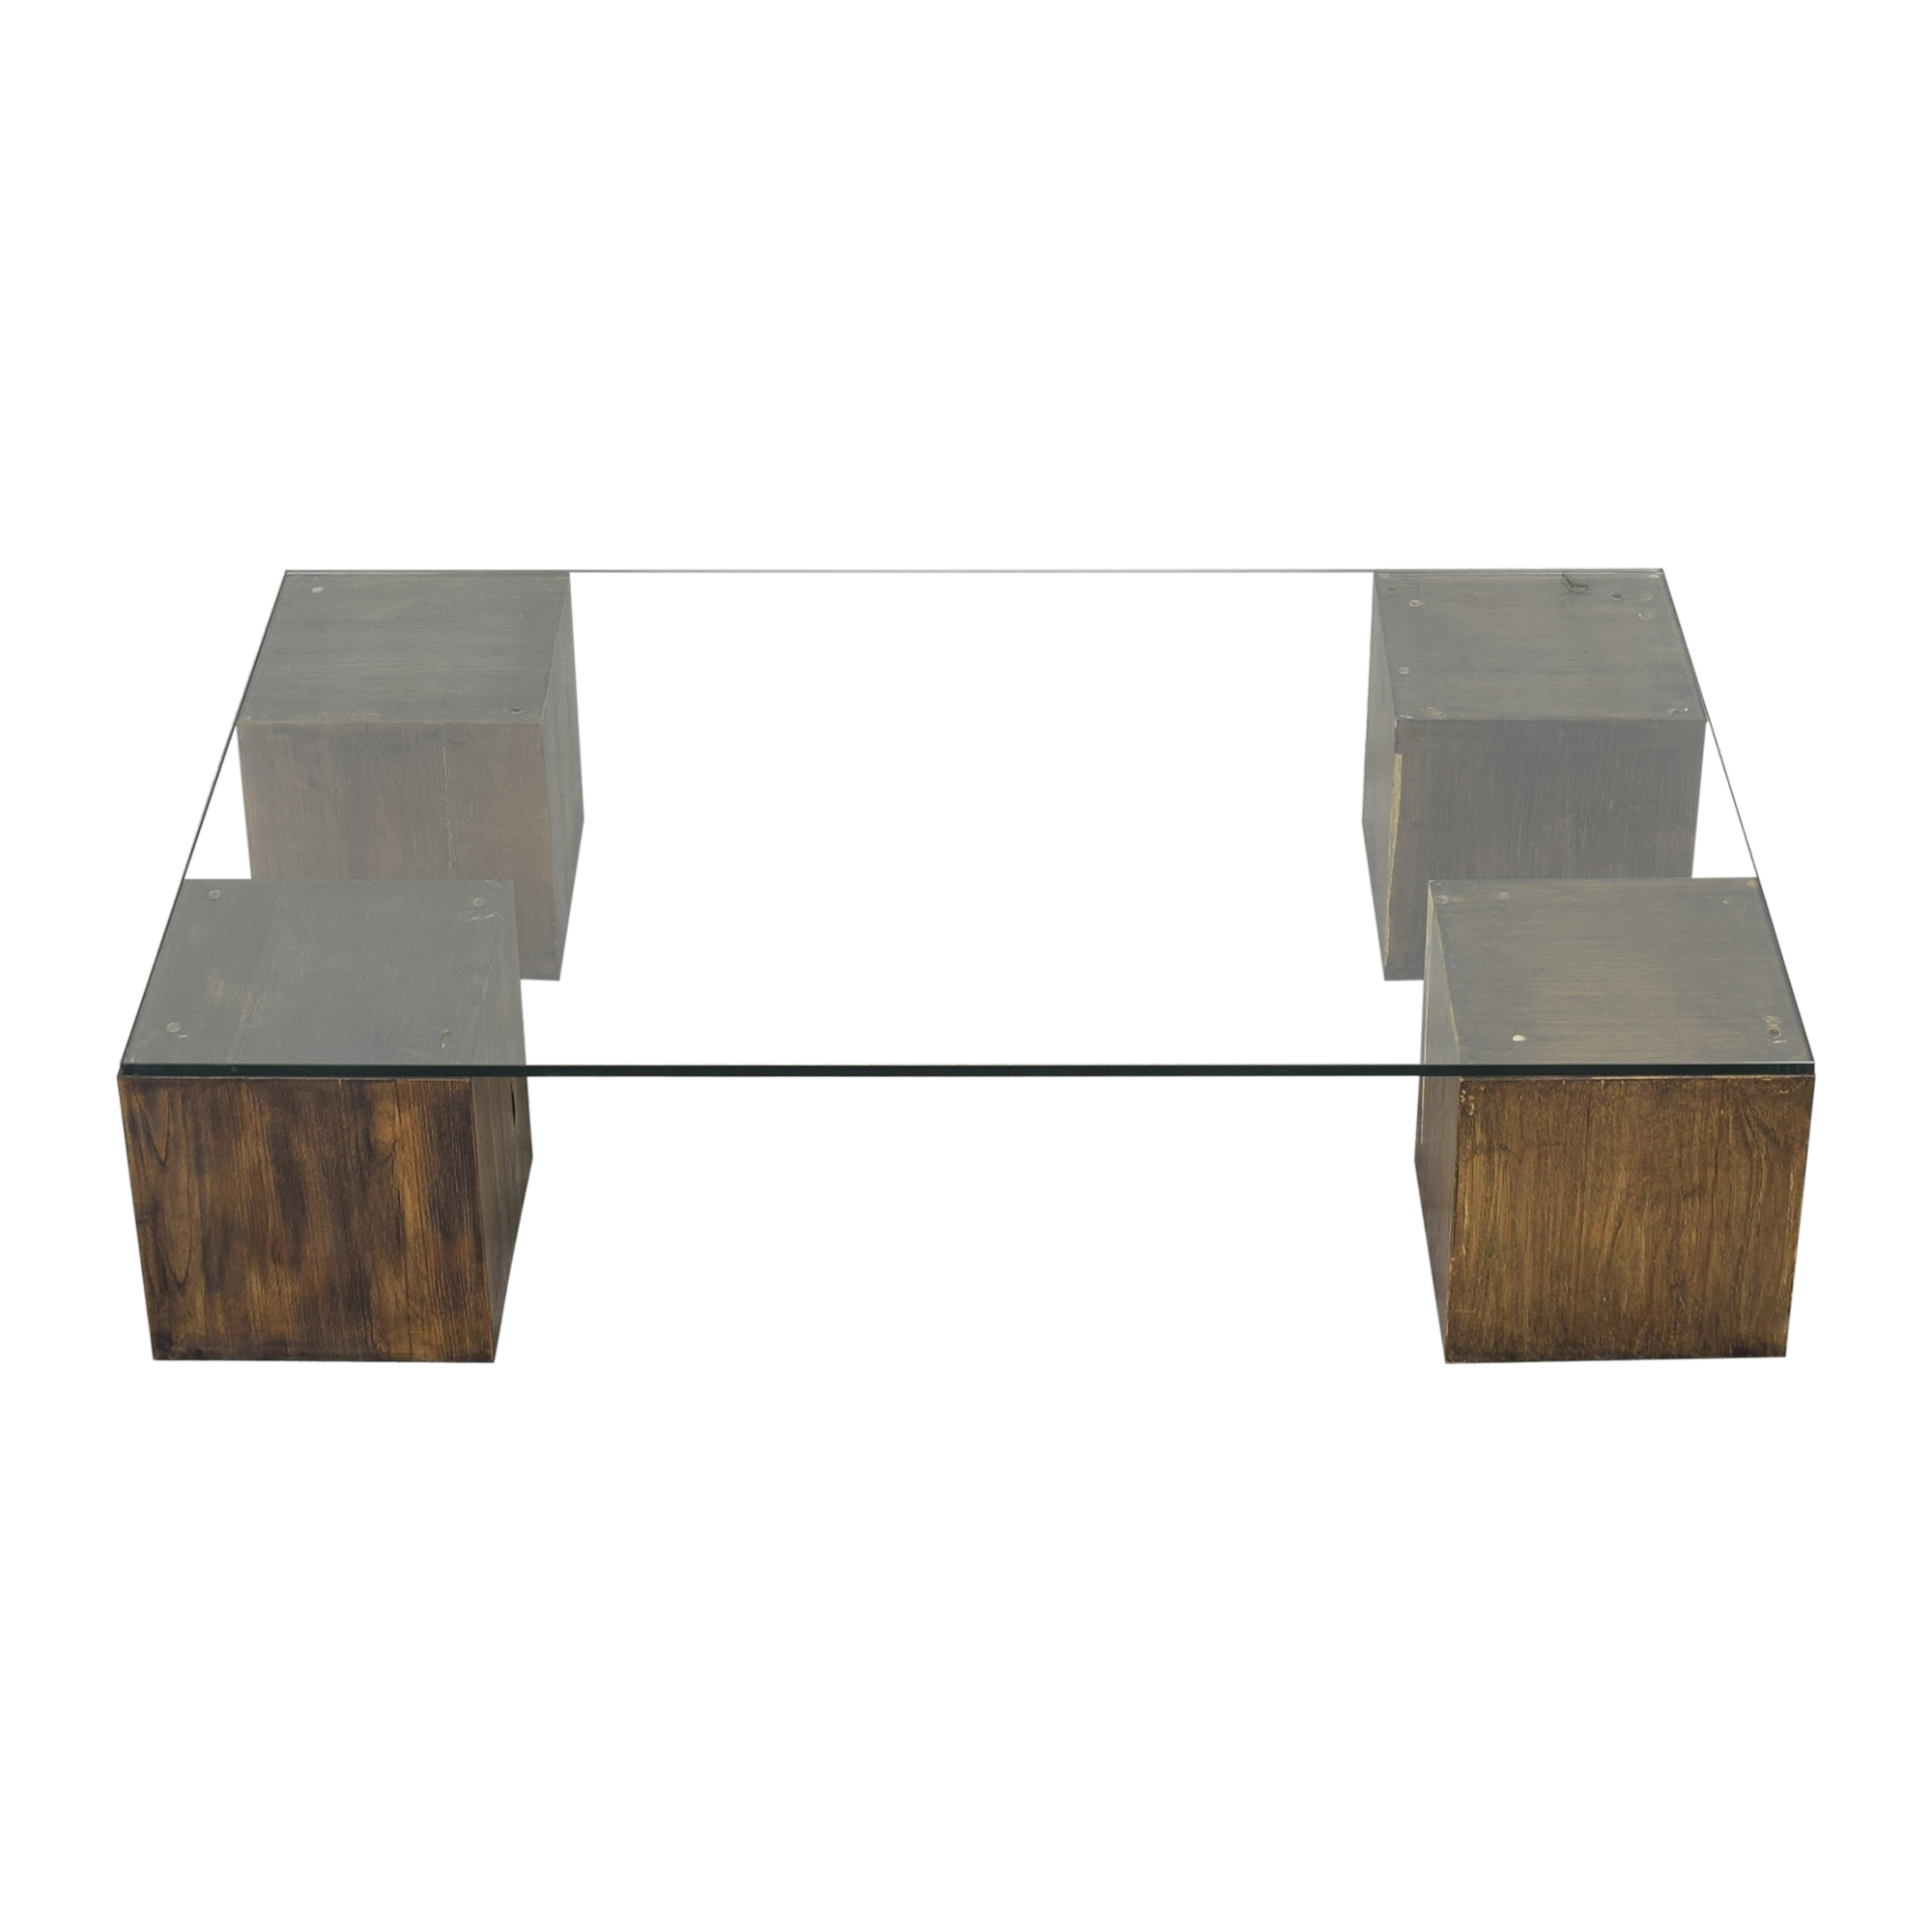 West Elm West Elm Raw Cube Coffee Table dark brown and clear